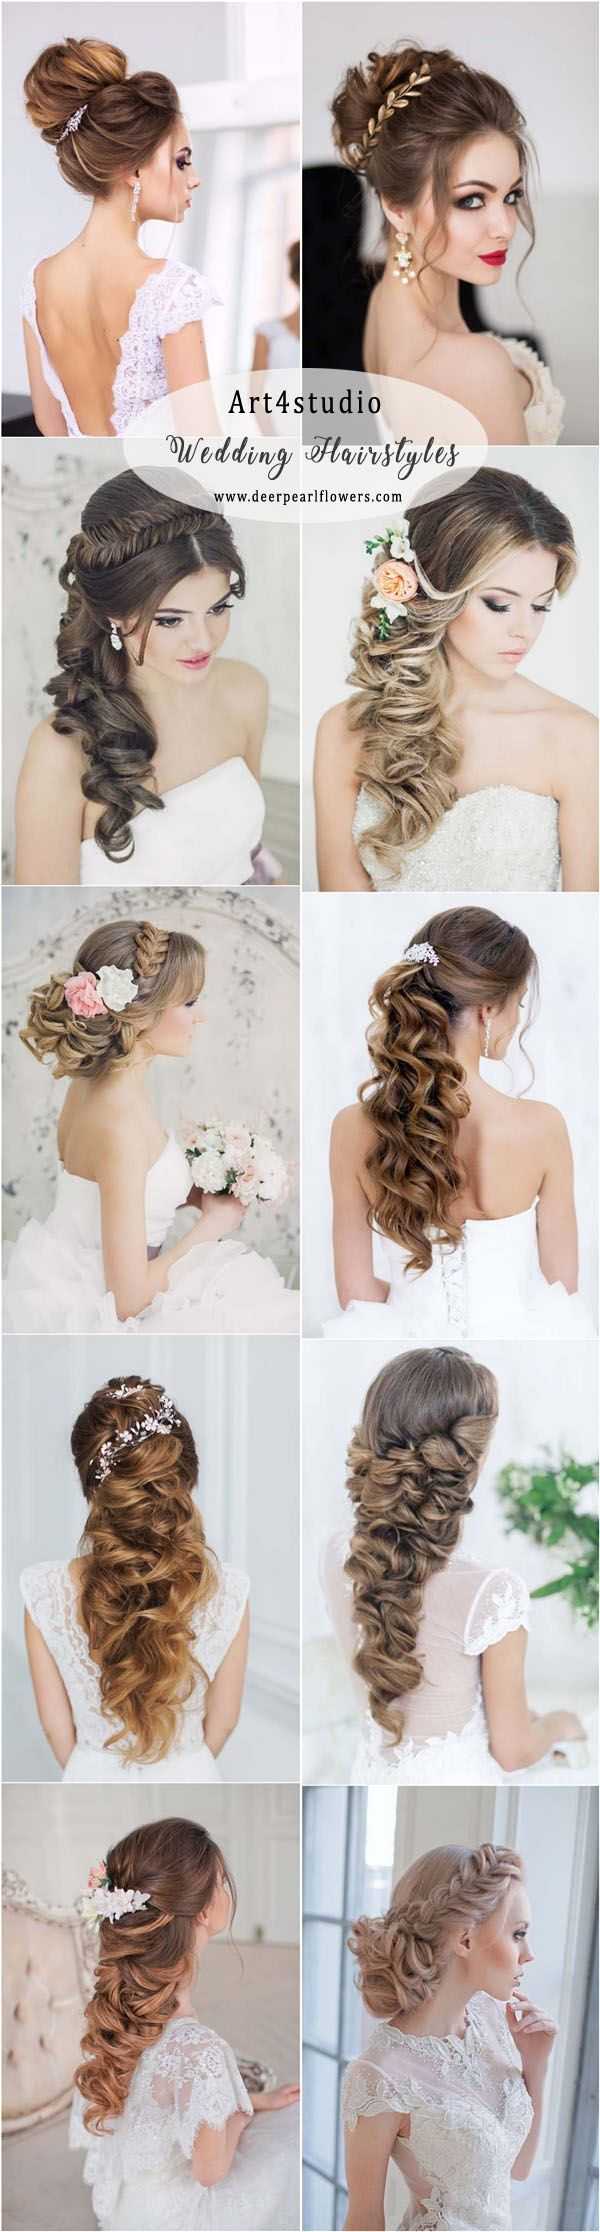 Art4studio long wedding hairstyles and updos